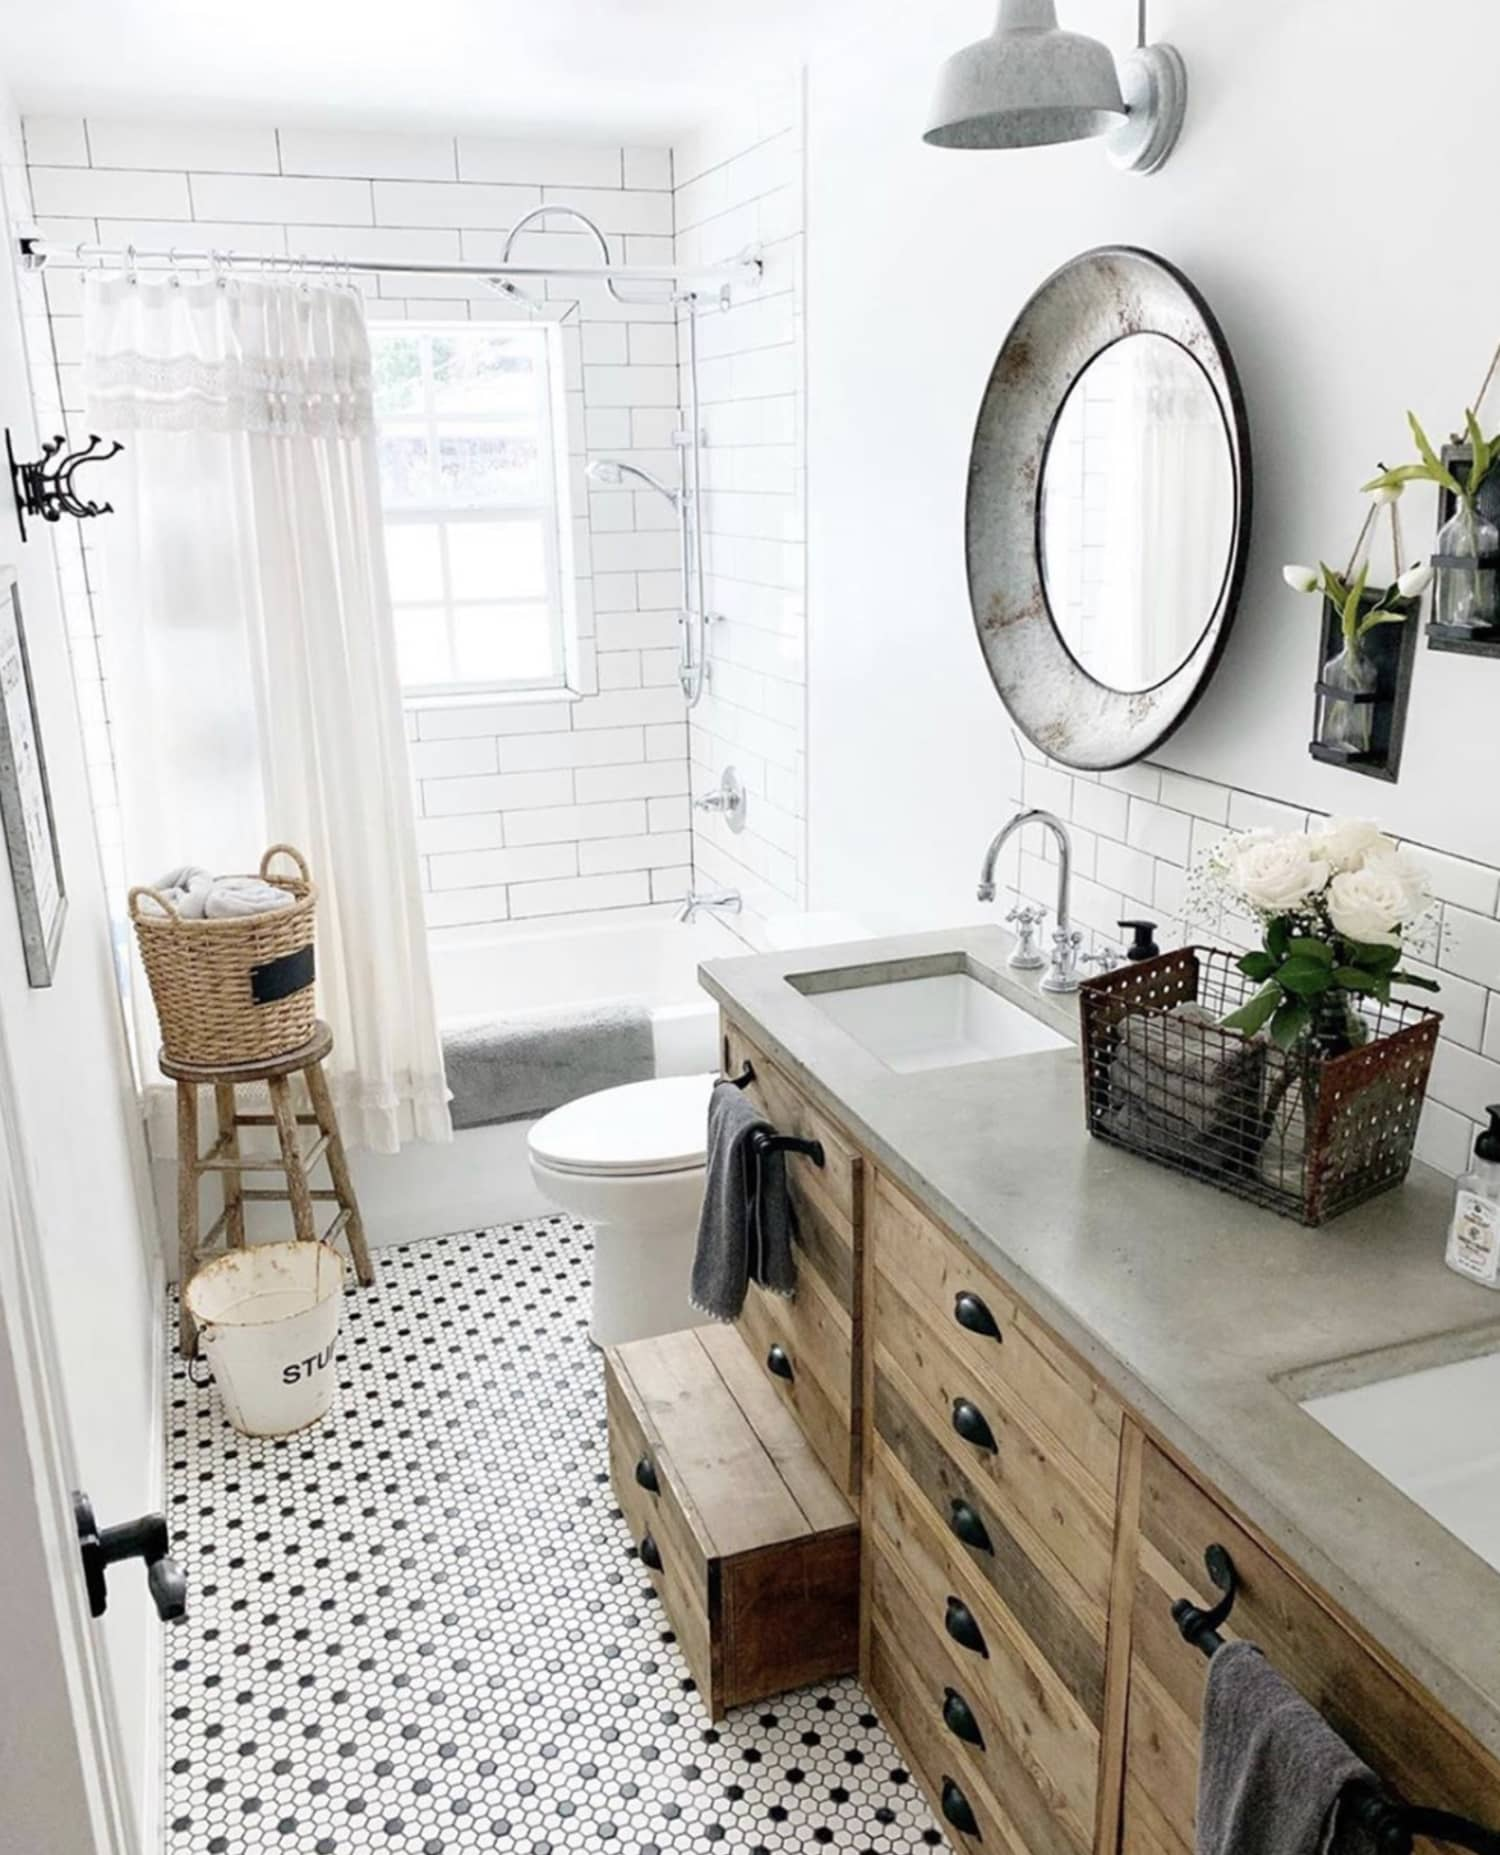 The Best Farmhouse Bathroom Decor - Farmhouse Bathroom Decor Ideas